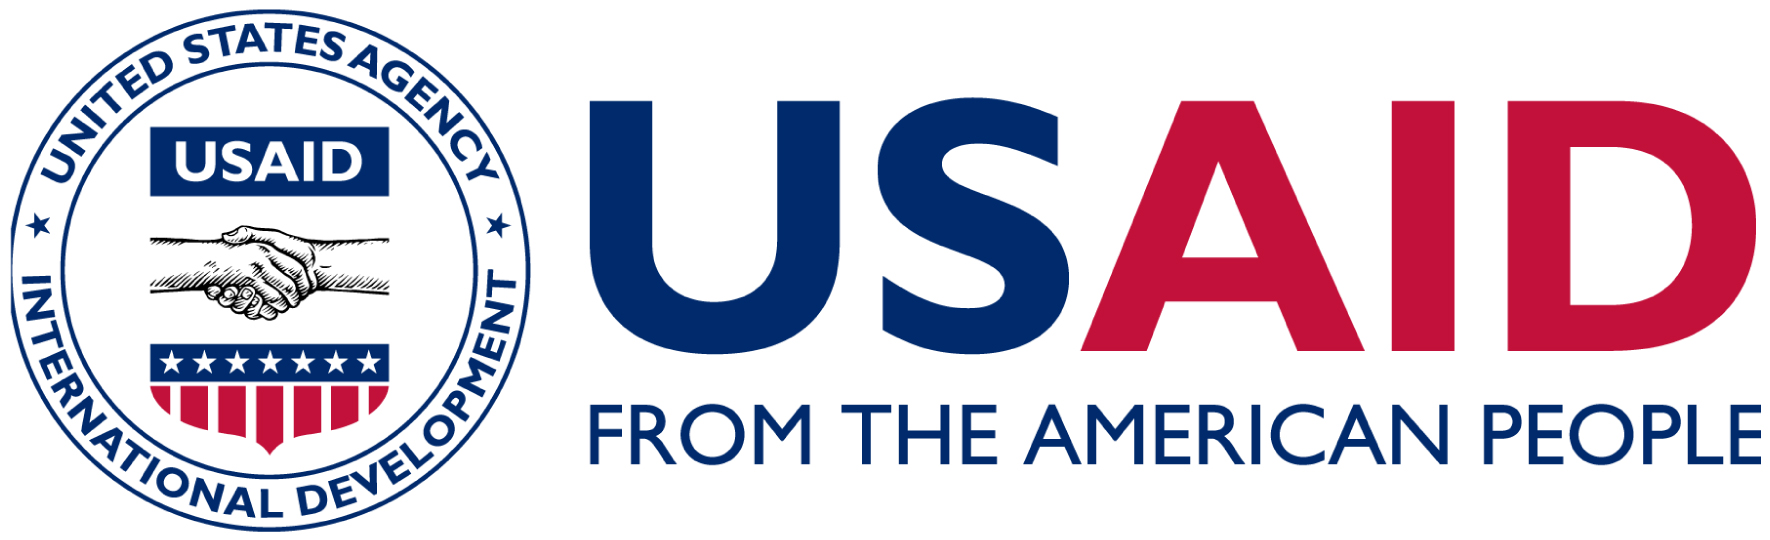 West, Central Africa get USAID's special journal on HIV and AIDS